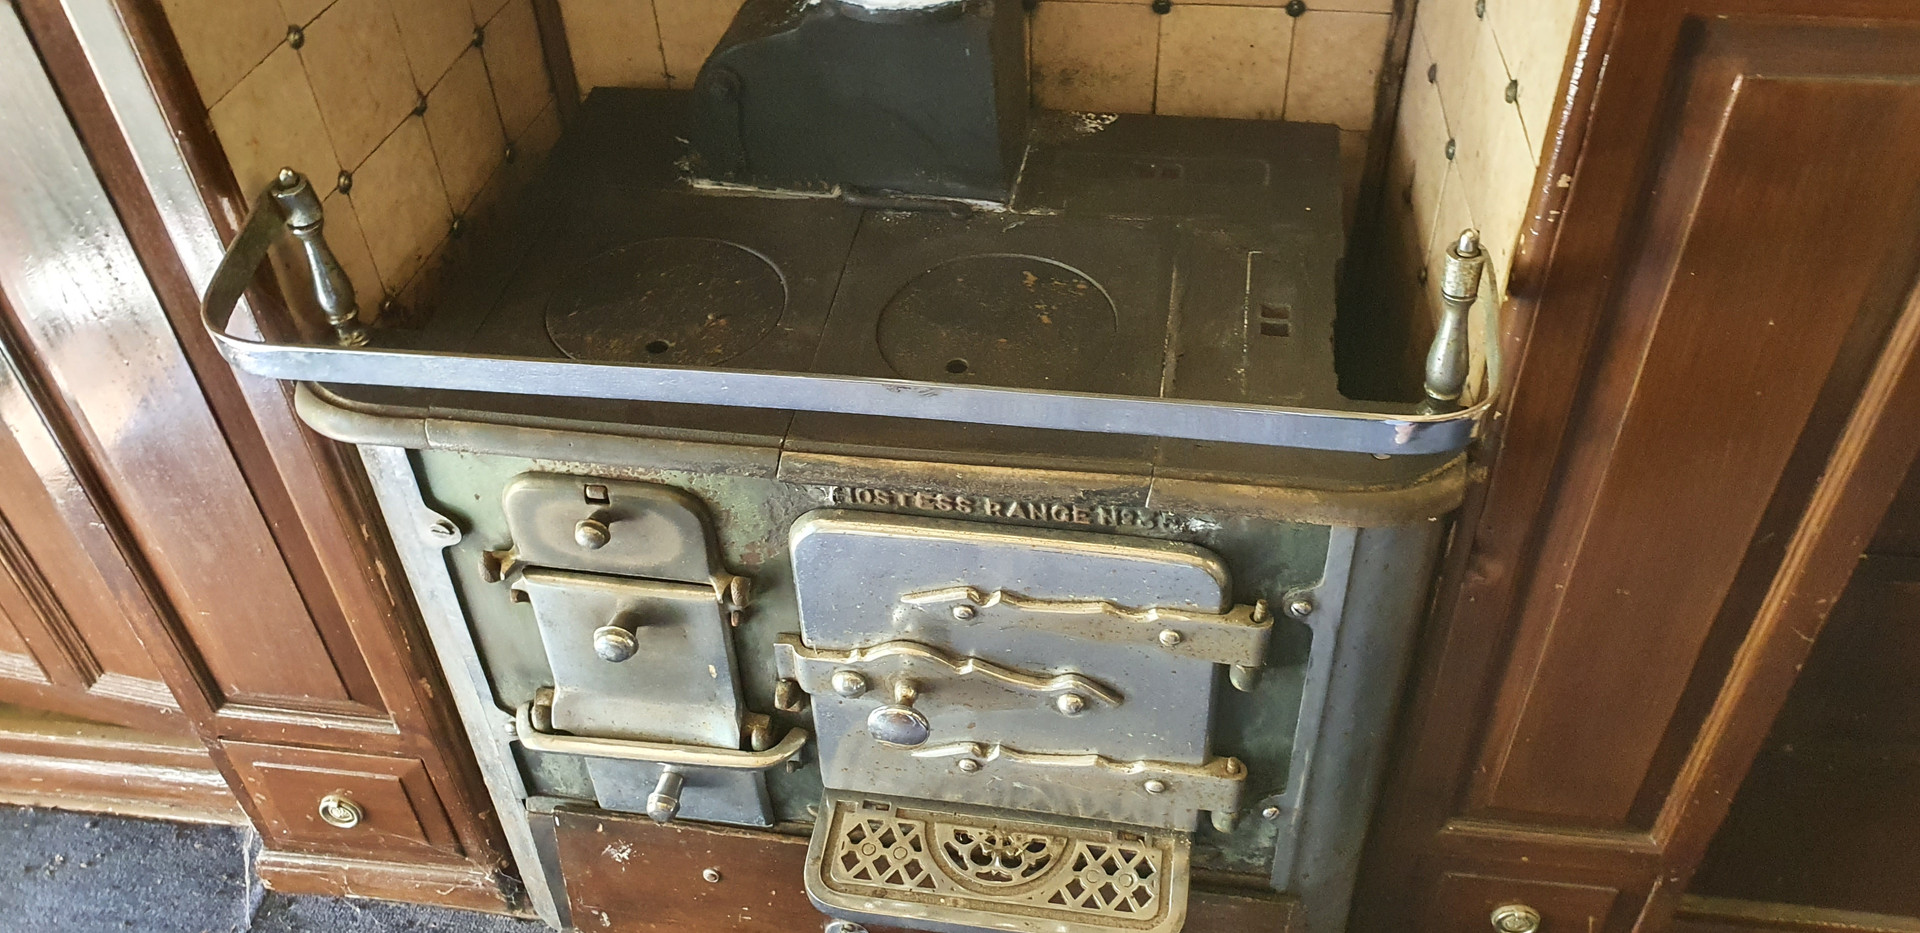 Hostess stove in excellent condition